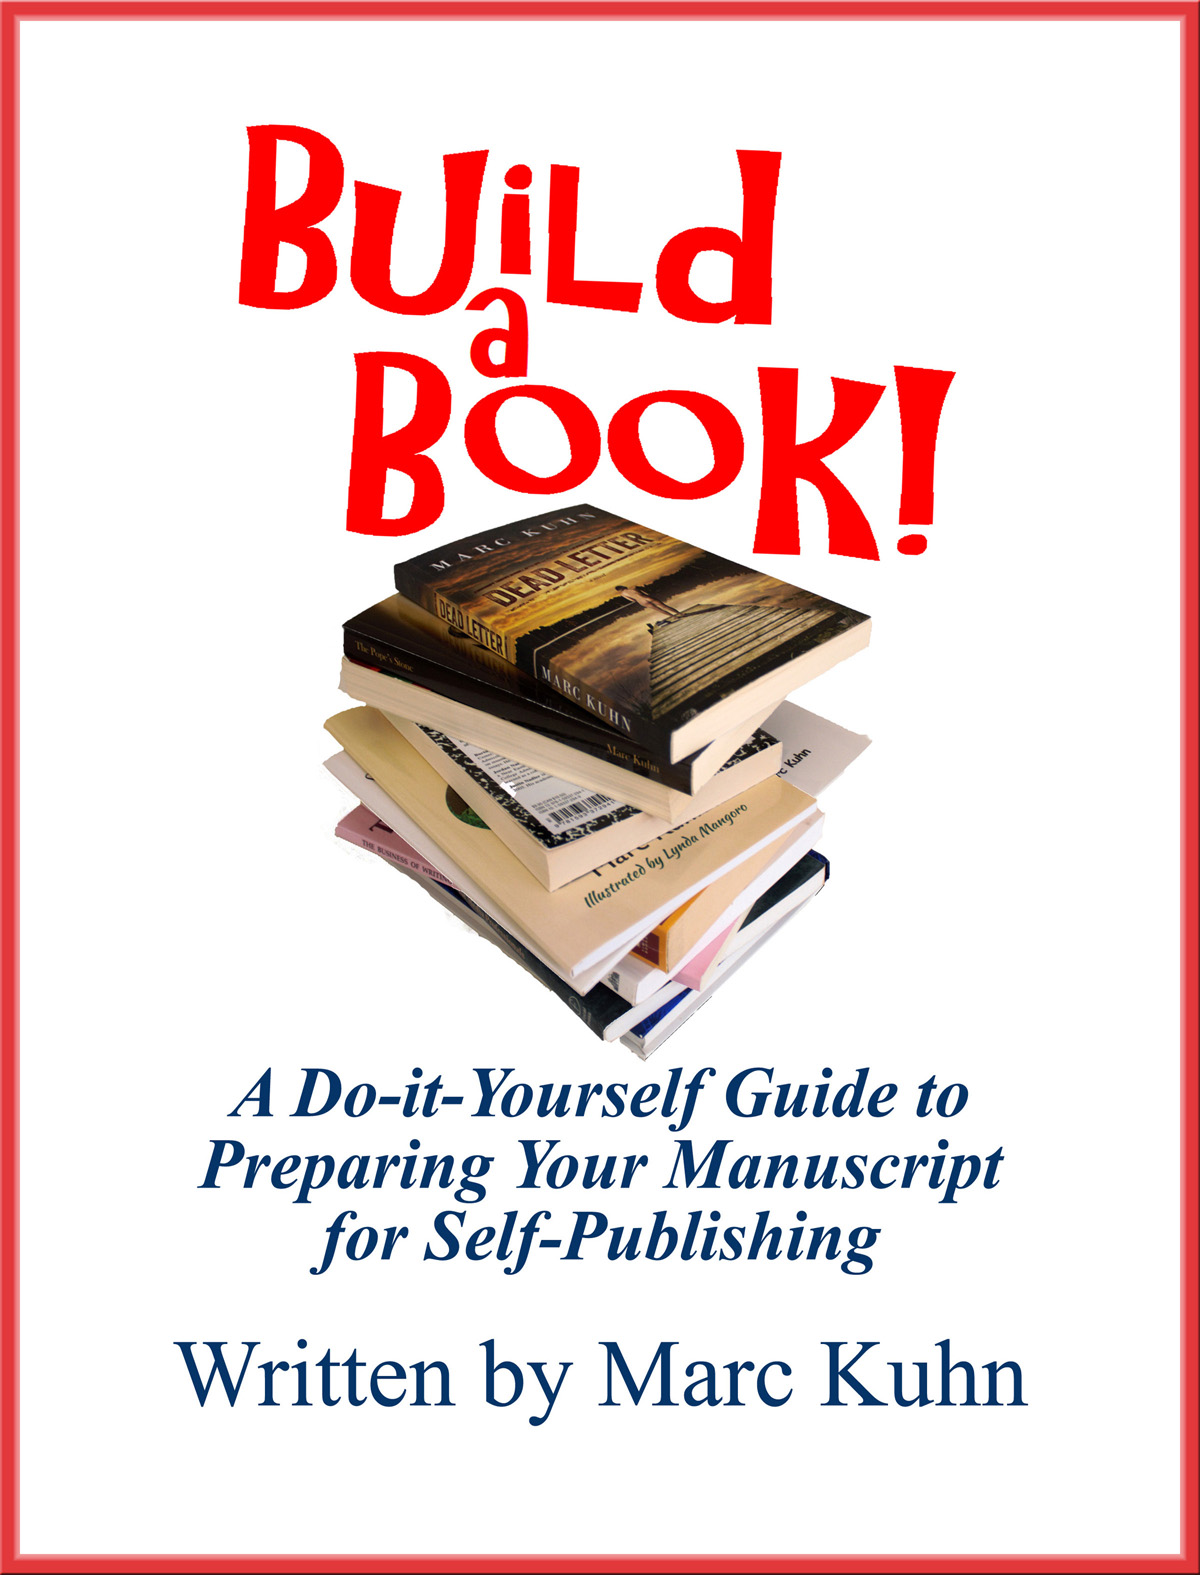 Here's a DIY Guide to newbies in the self-publishing arena.  Learn how to prep your own manuscript for publication.